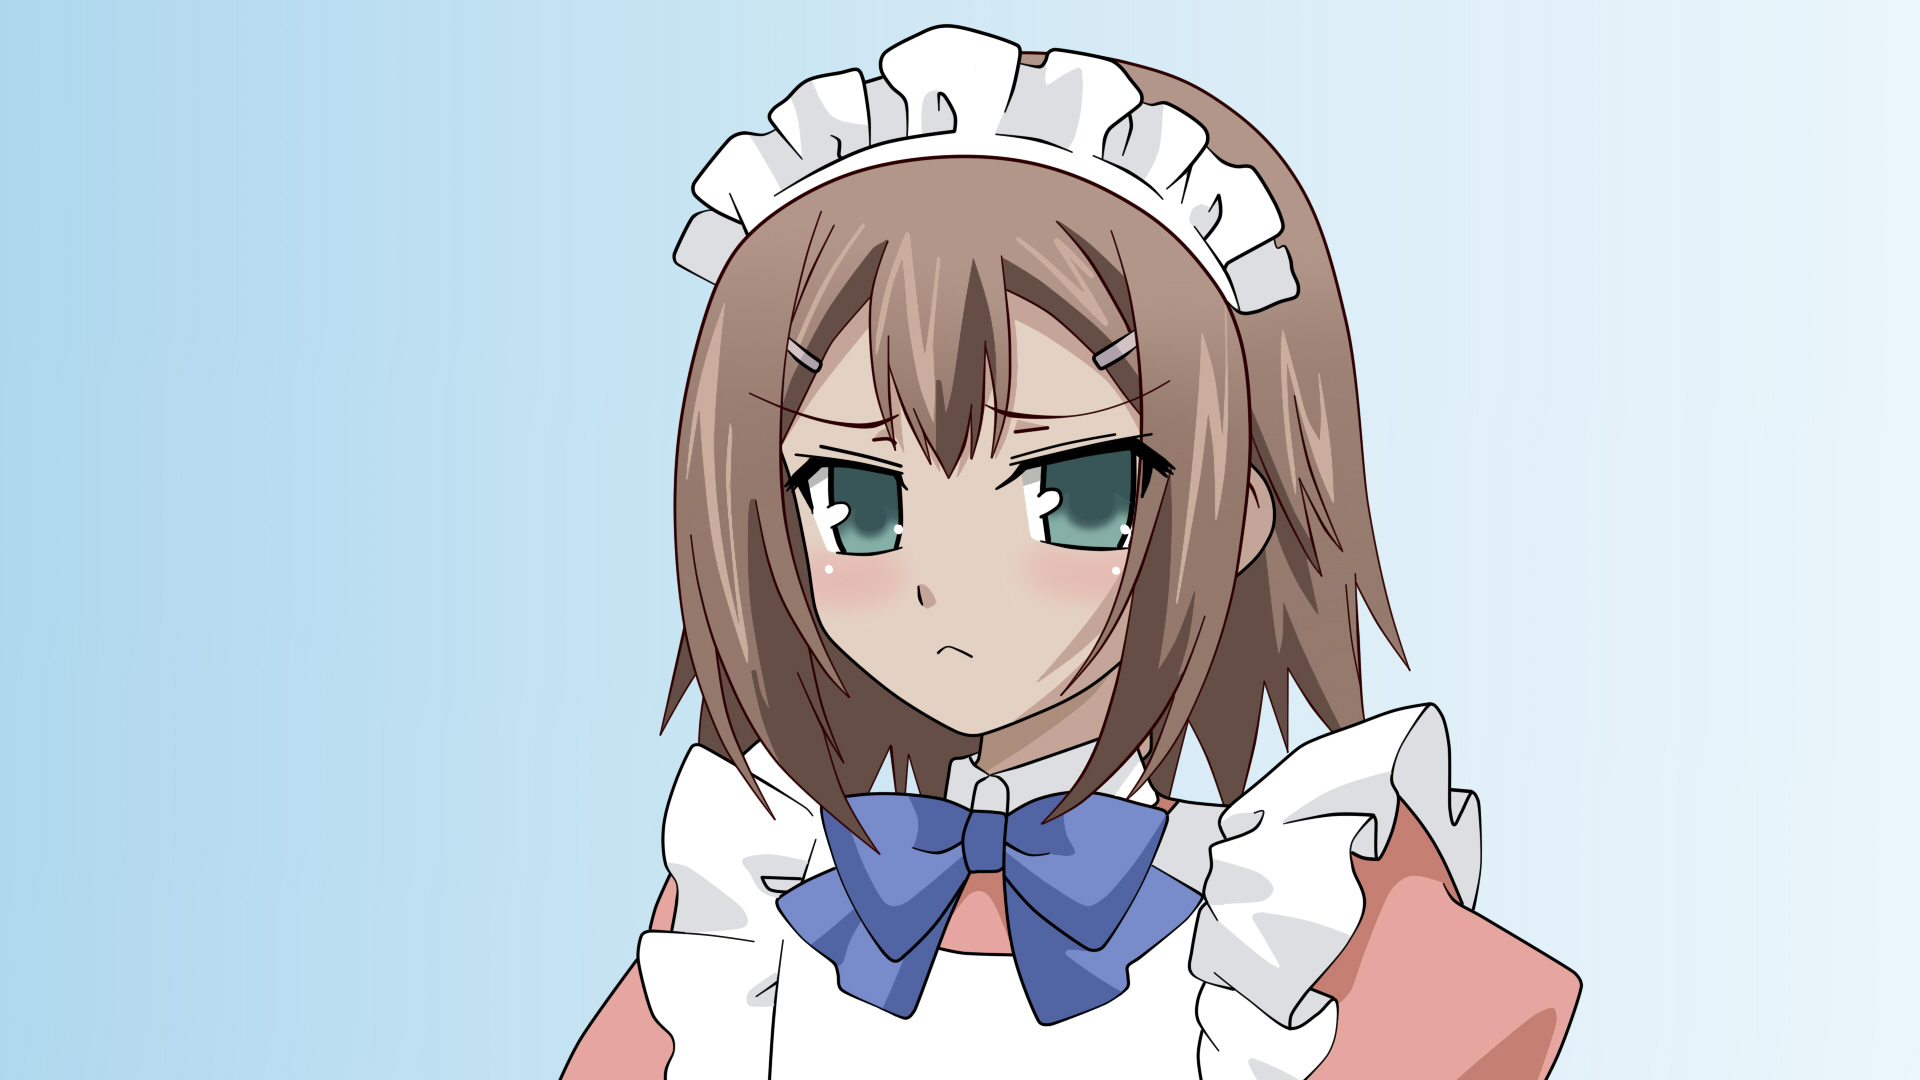 baka_to_test_to_shoukanjuu blush kinoshita_hideyoshi maid trap vector